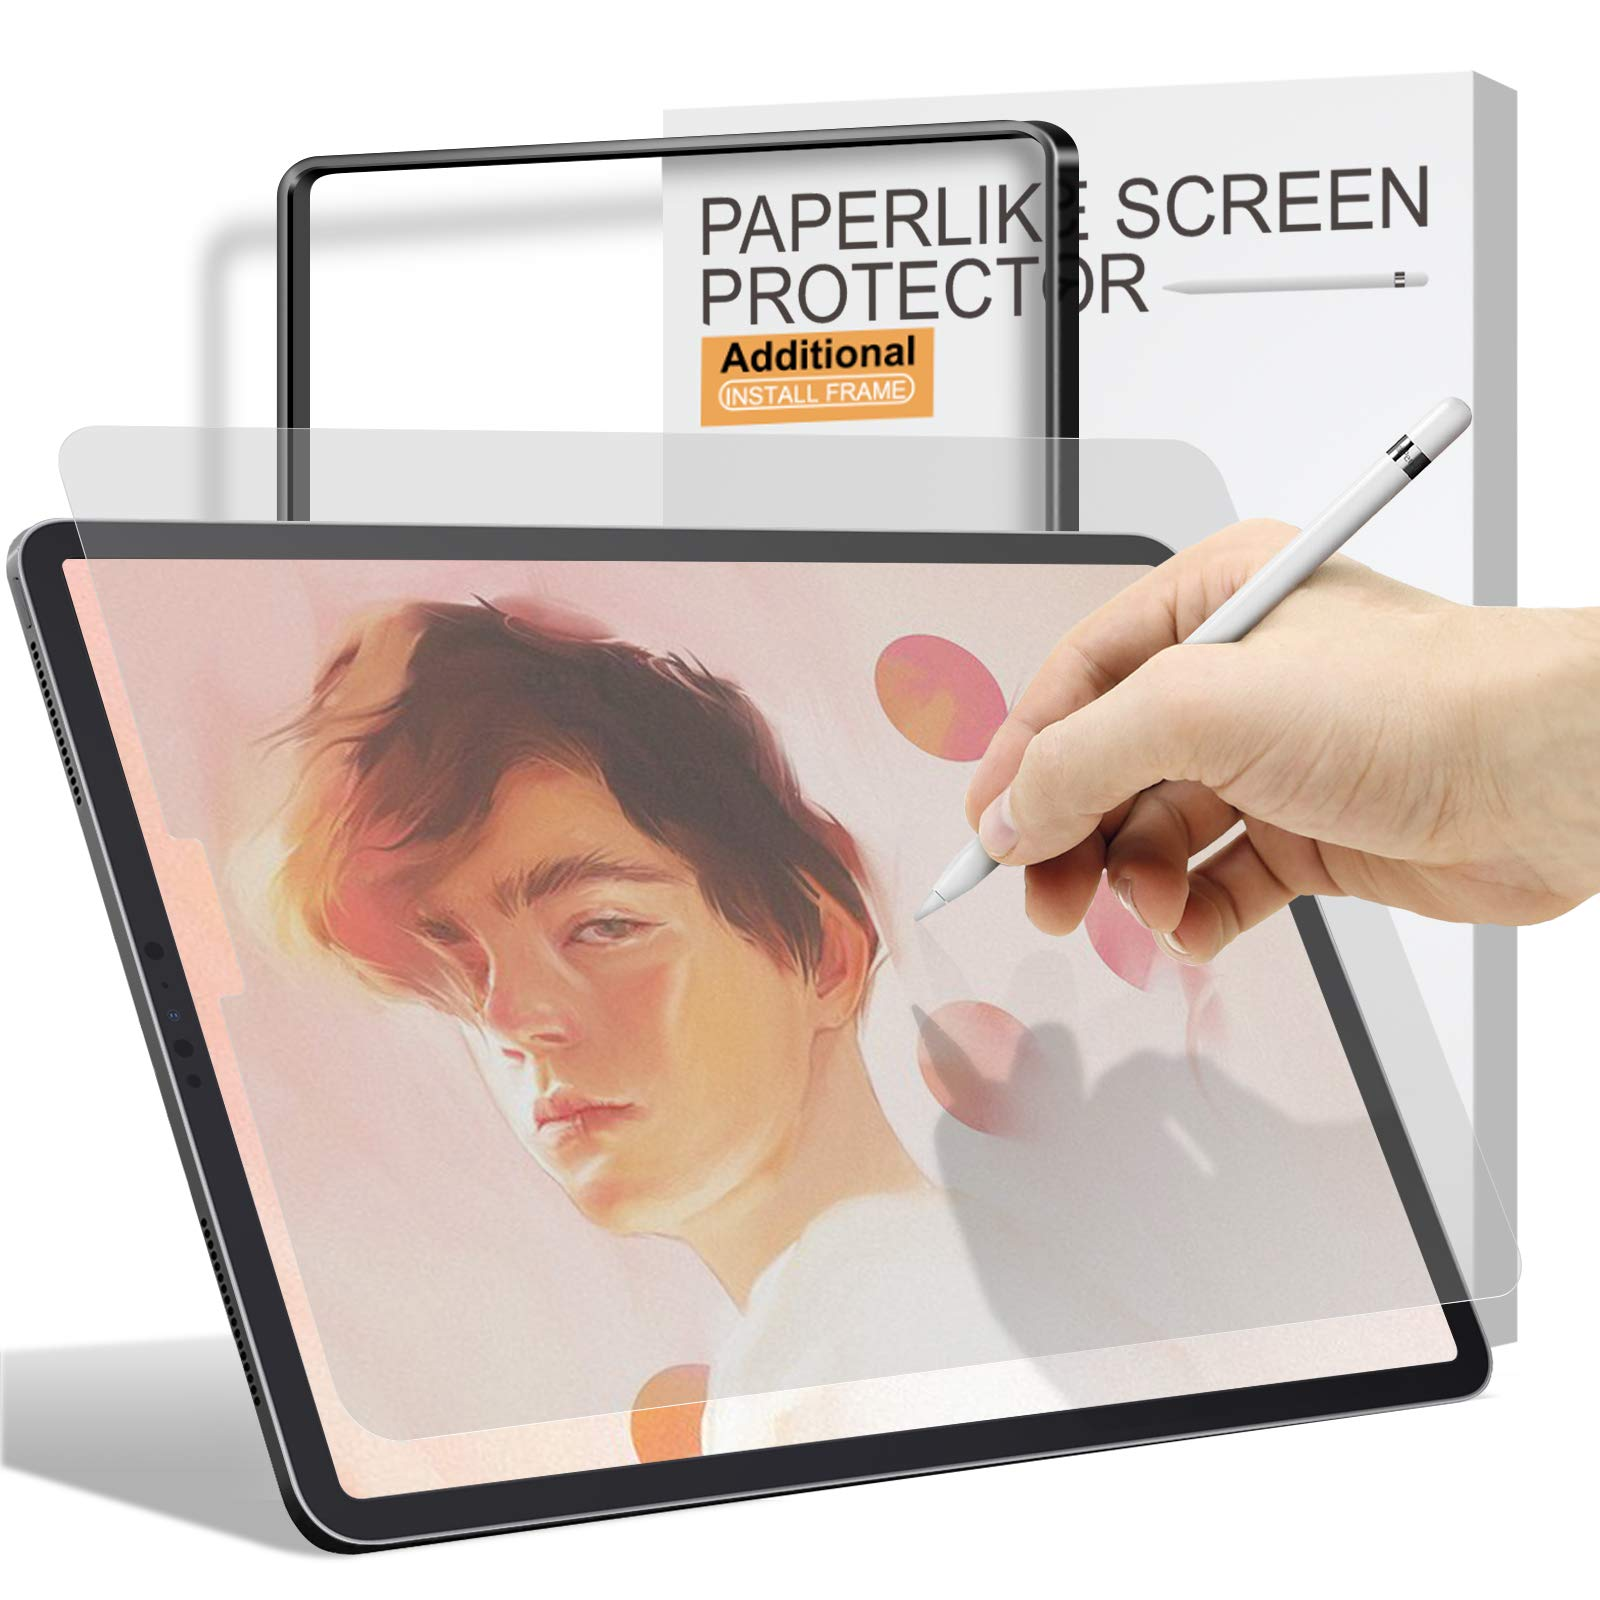 Paperfeel Screen Protector for iPad Air 4 2020 / iPad Pro 11 2020 & 2018, [Install Frame] Ambison High Touch Sensitivity Paperfeel iPad Pro 11/10.9 inch Matte Screen Protector, Apple Pencil Compatible